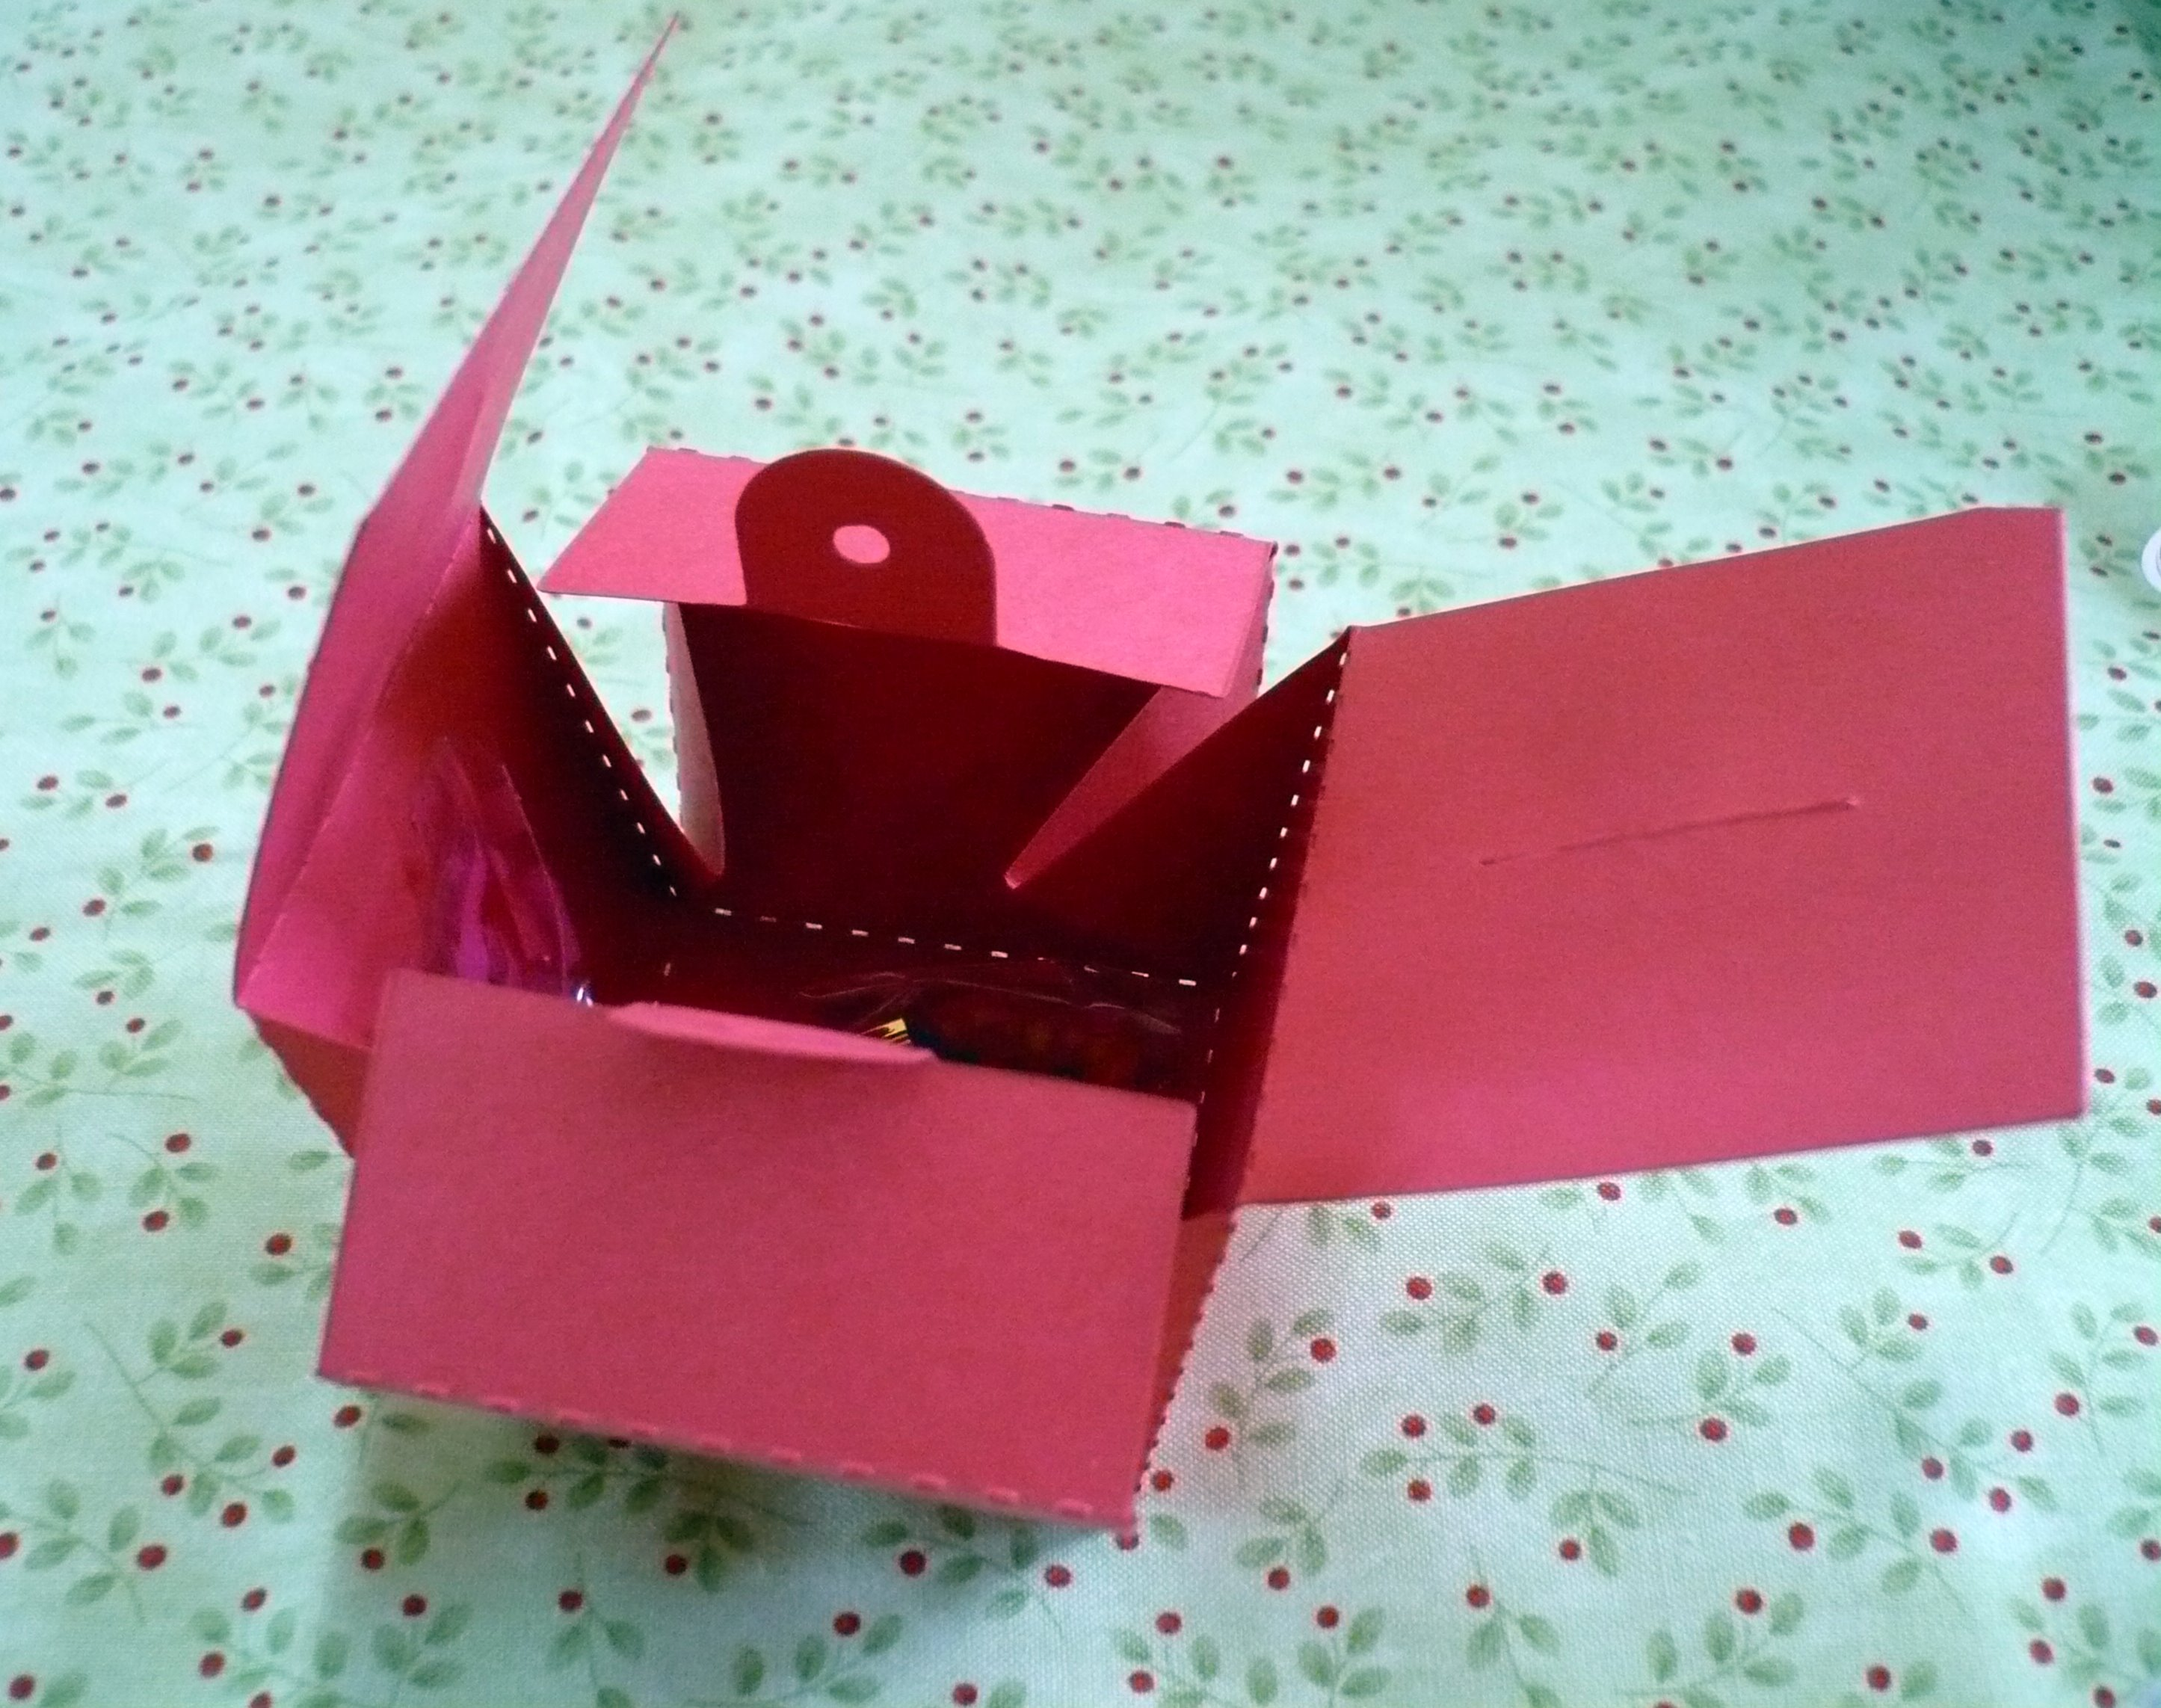 opening boxes